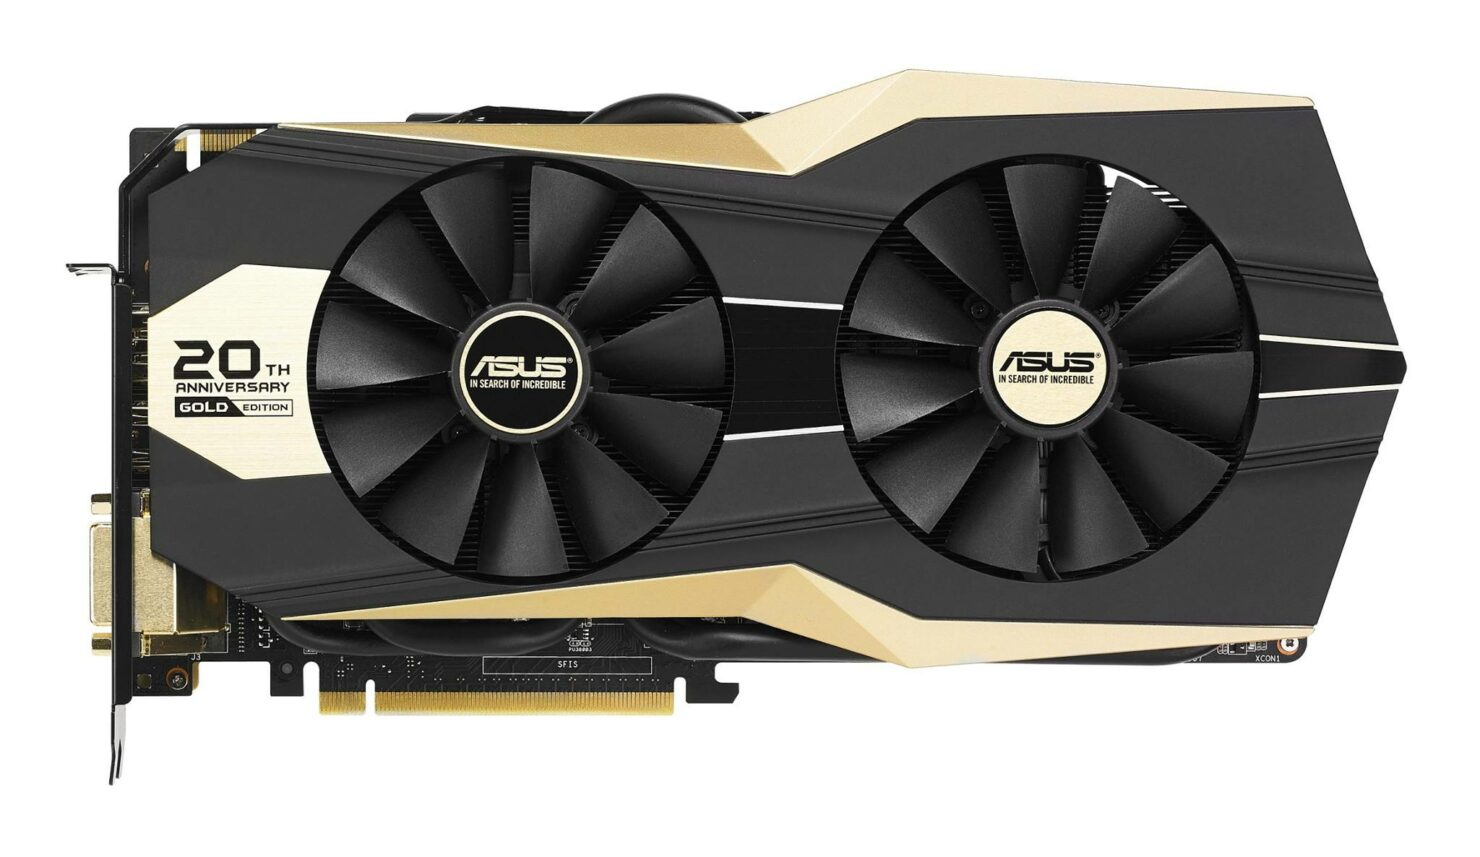 asus-geforce-gtx-980-20th-anniversary-gold-edition_front